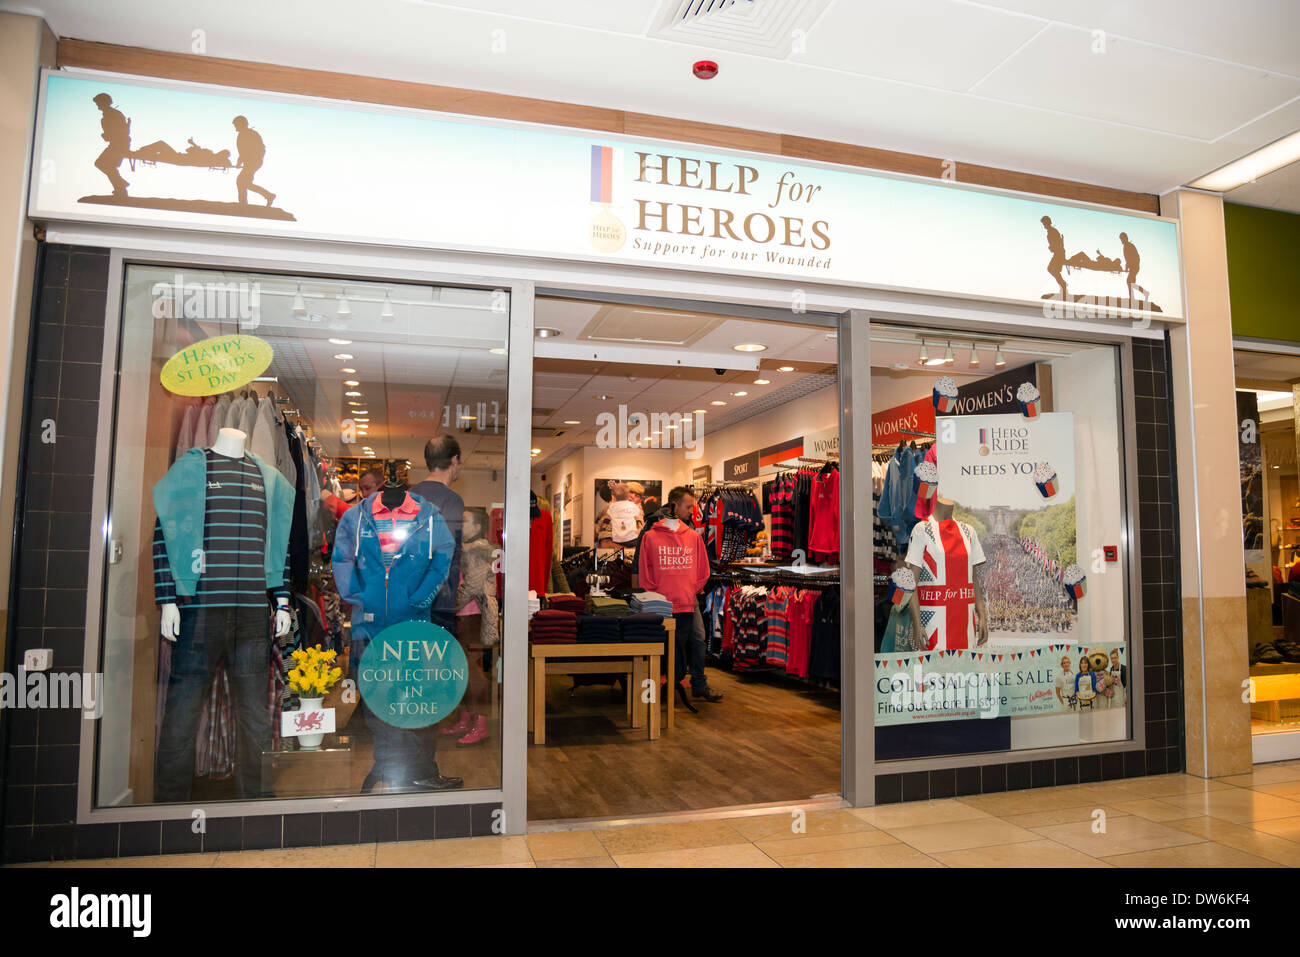 Help for Heroes charity shop Cardiff, Wales, UK. - Stock Image